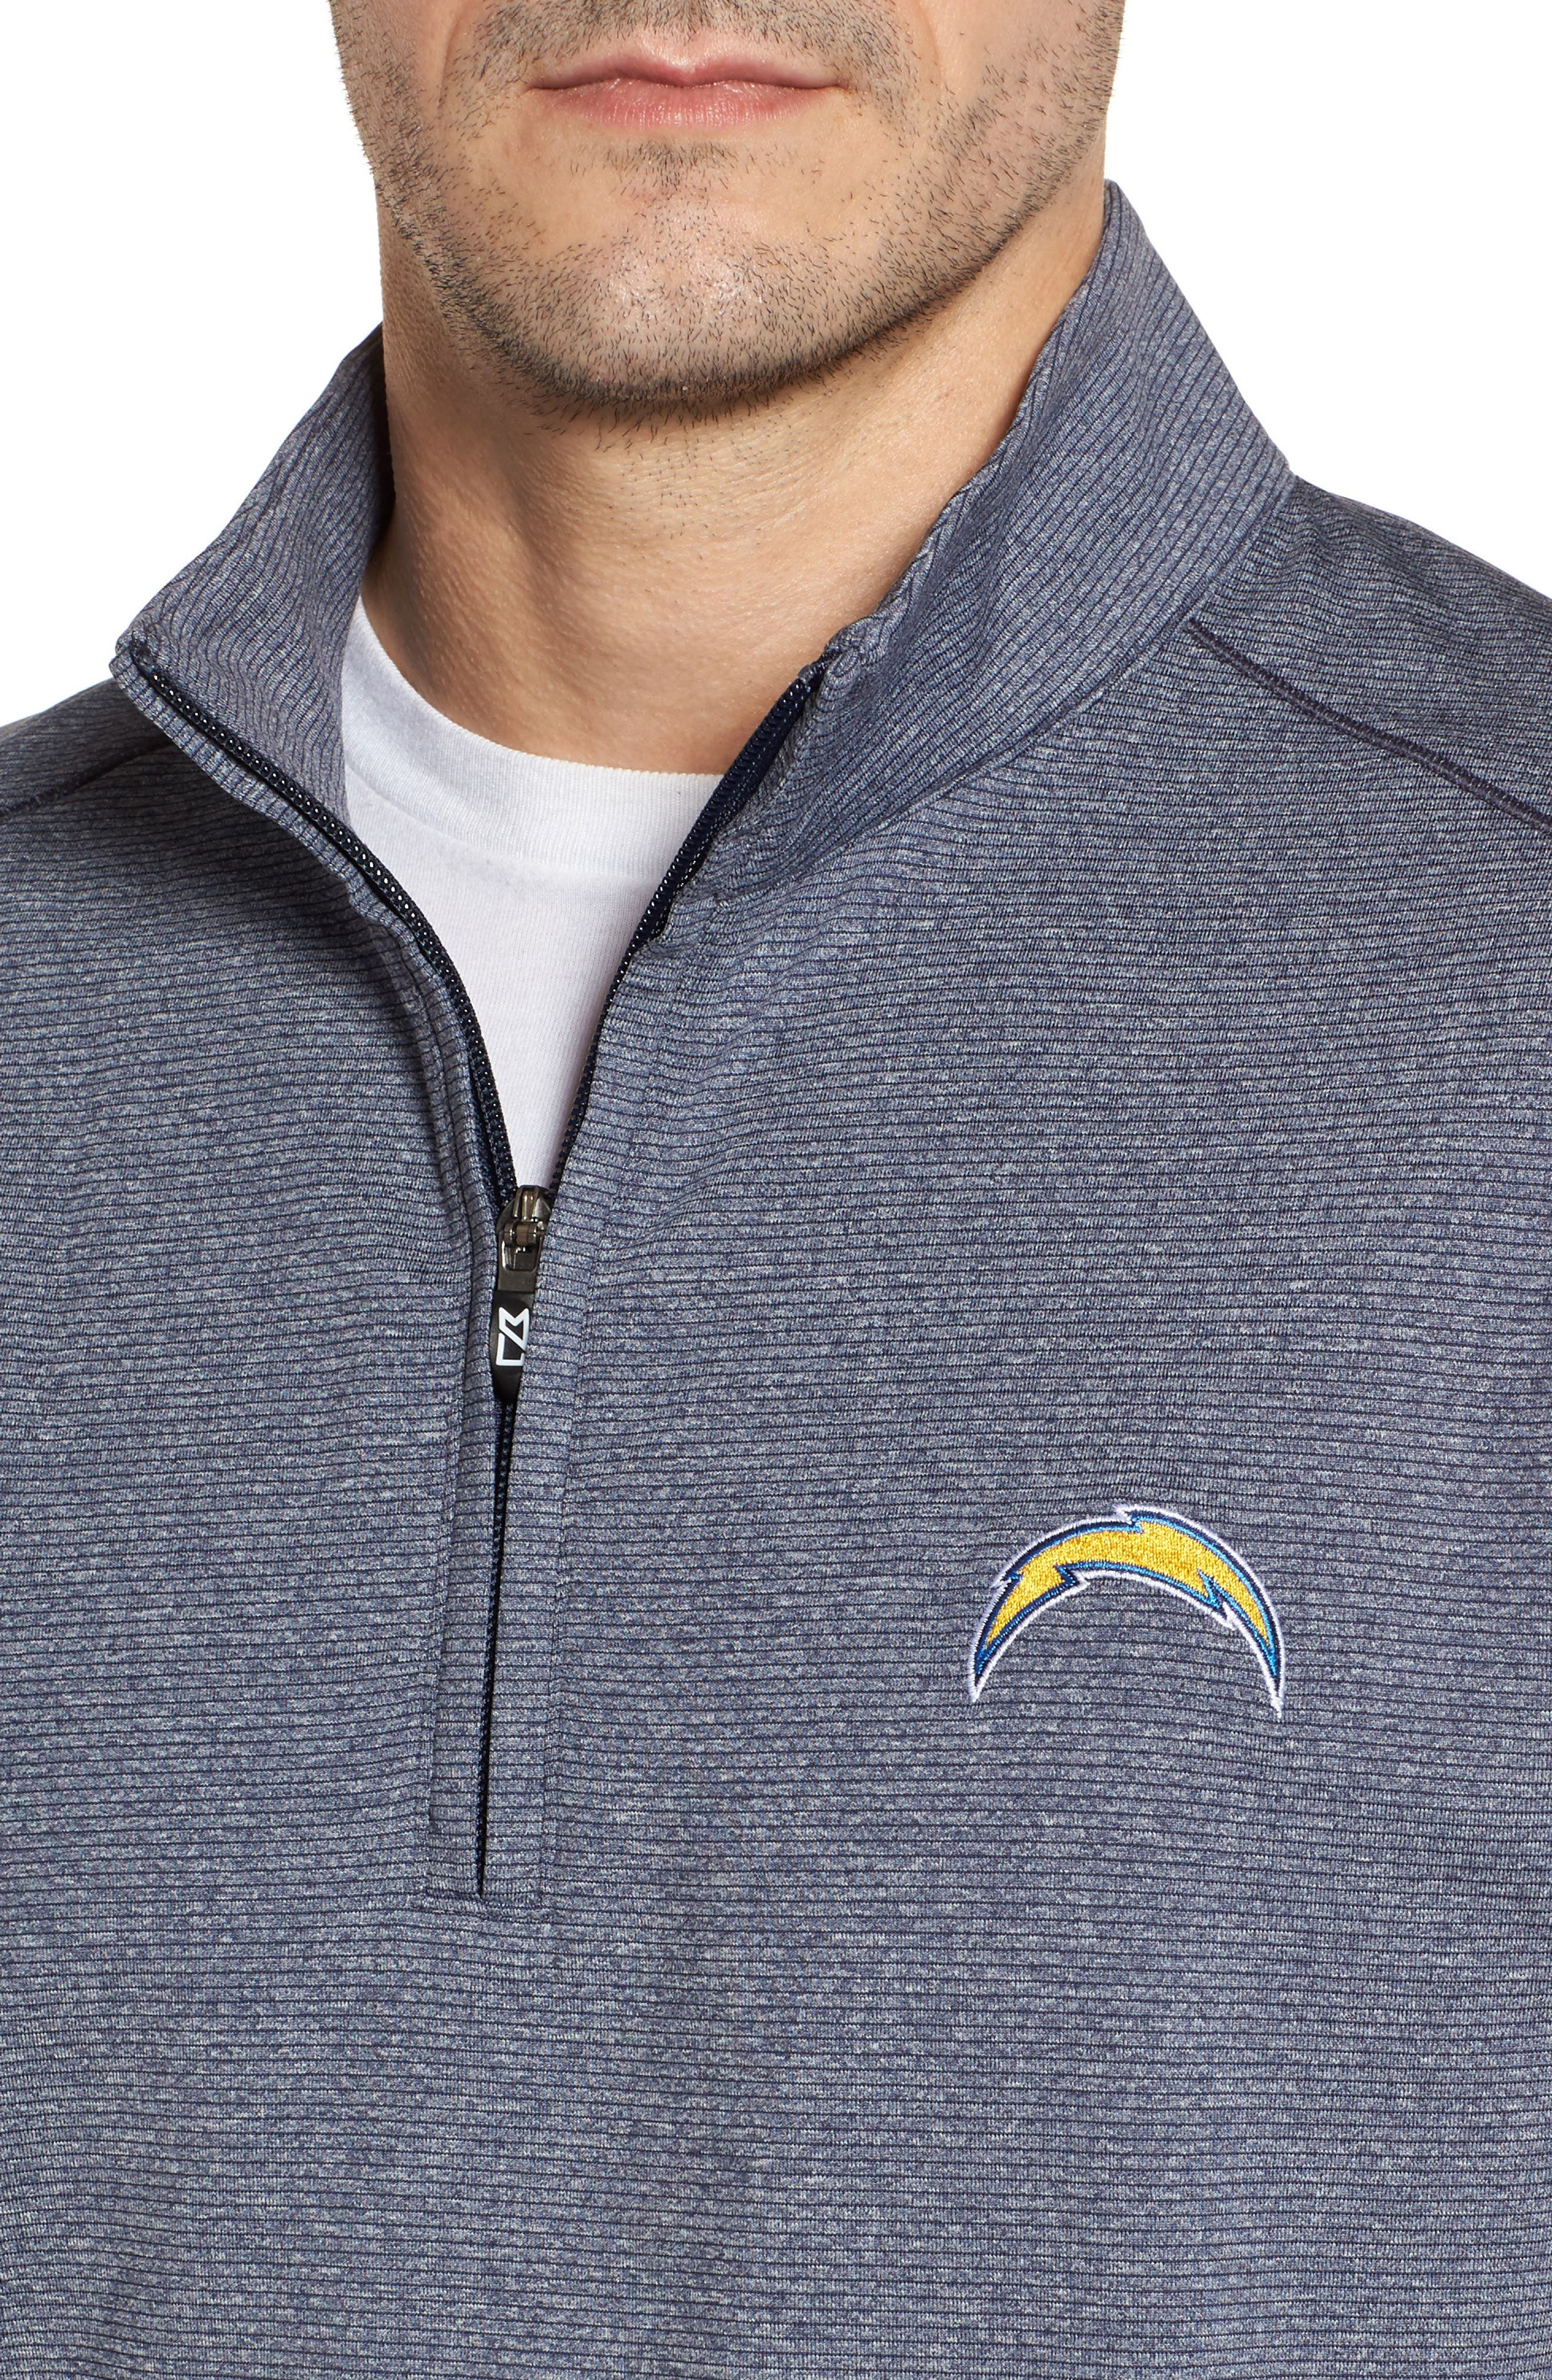 Shoreline - Los Angeles Chargers Half Zip Pullover,                             Alternate thumbnail 4, color,                             Liberty Navy Heather